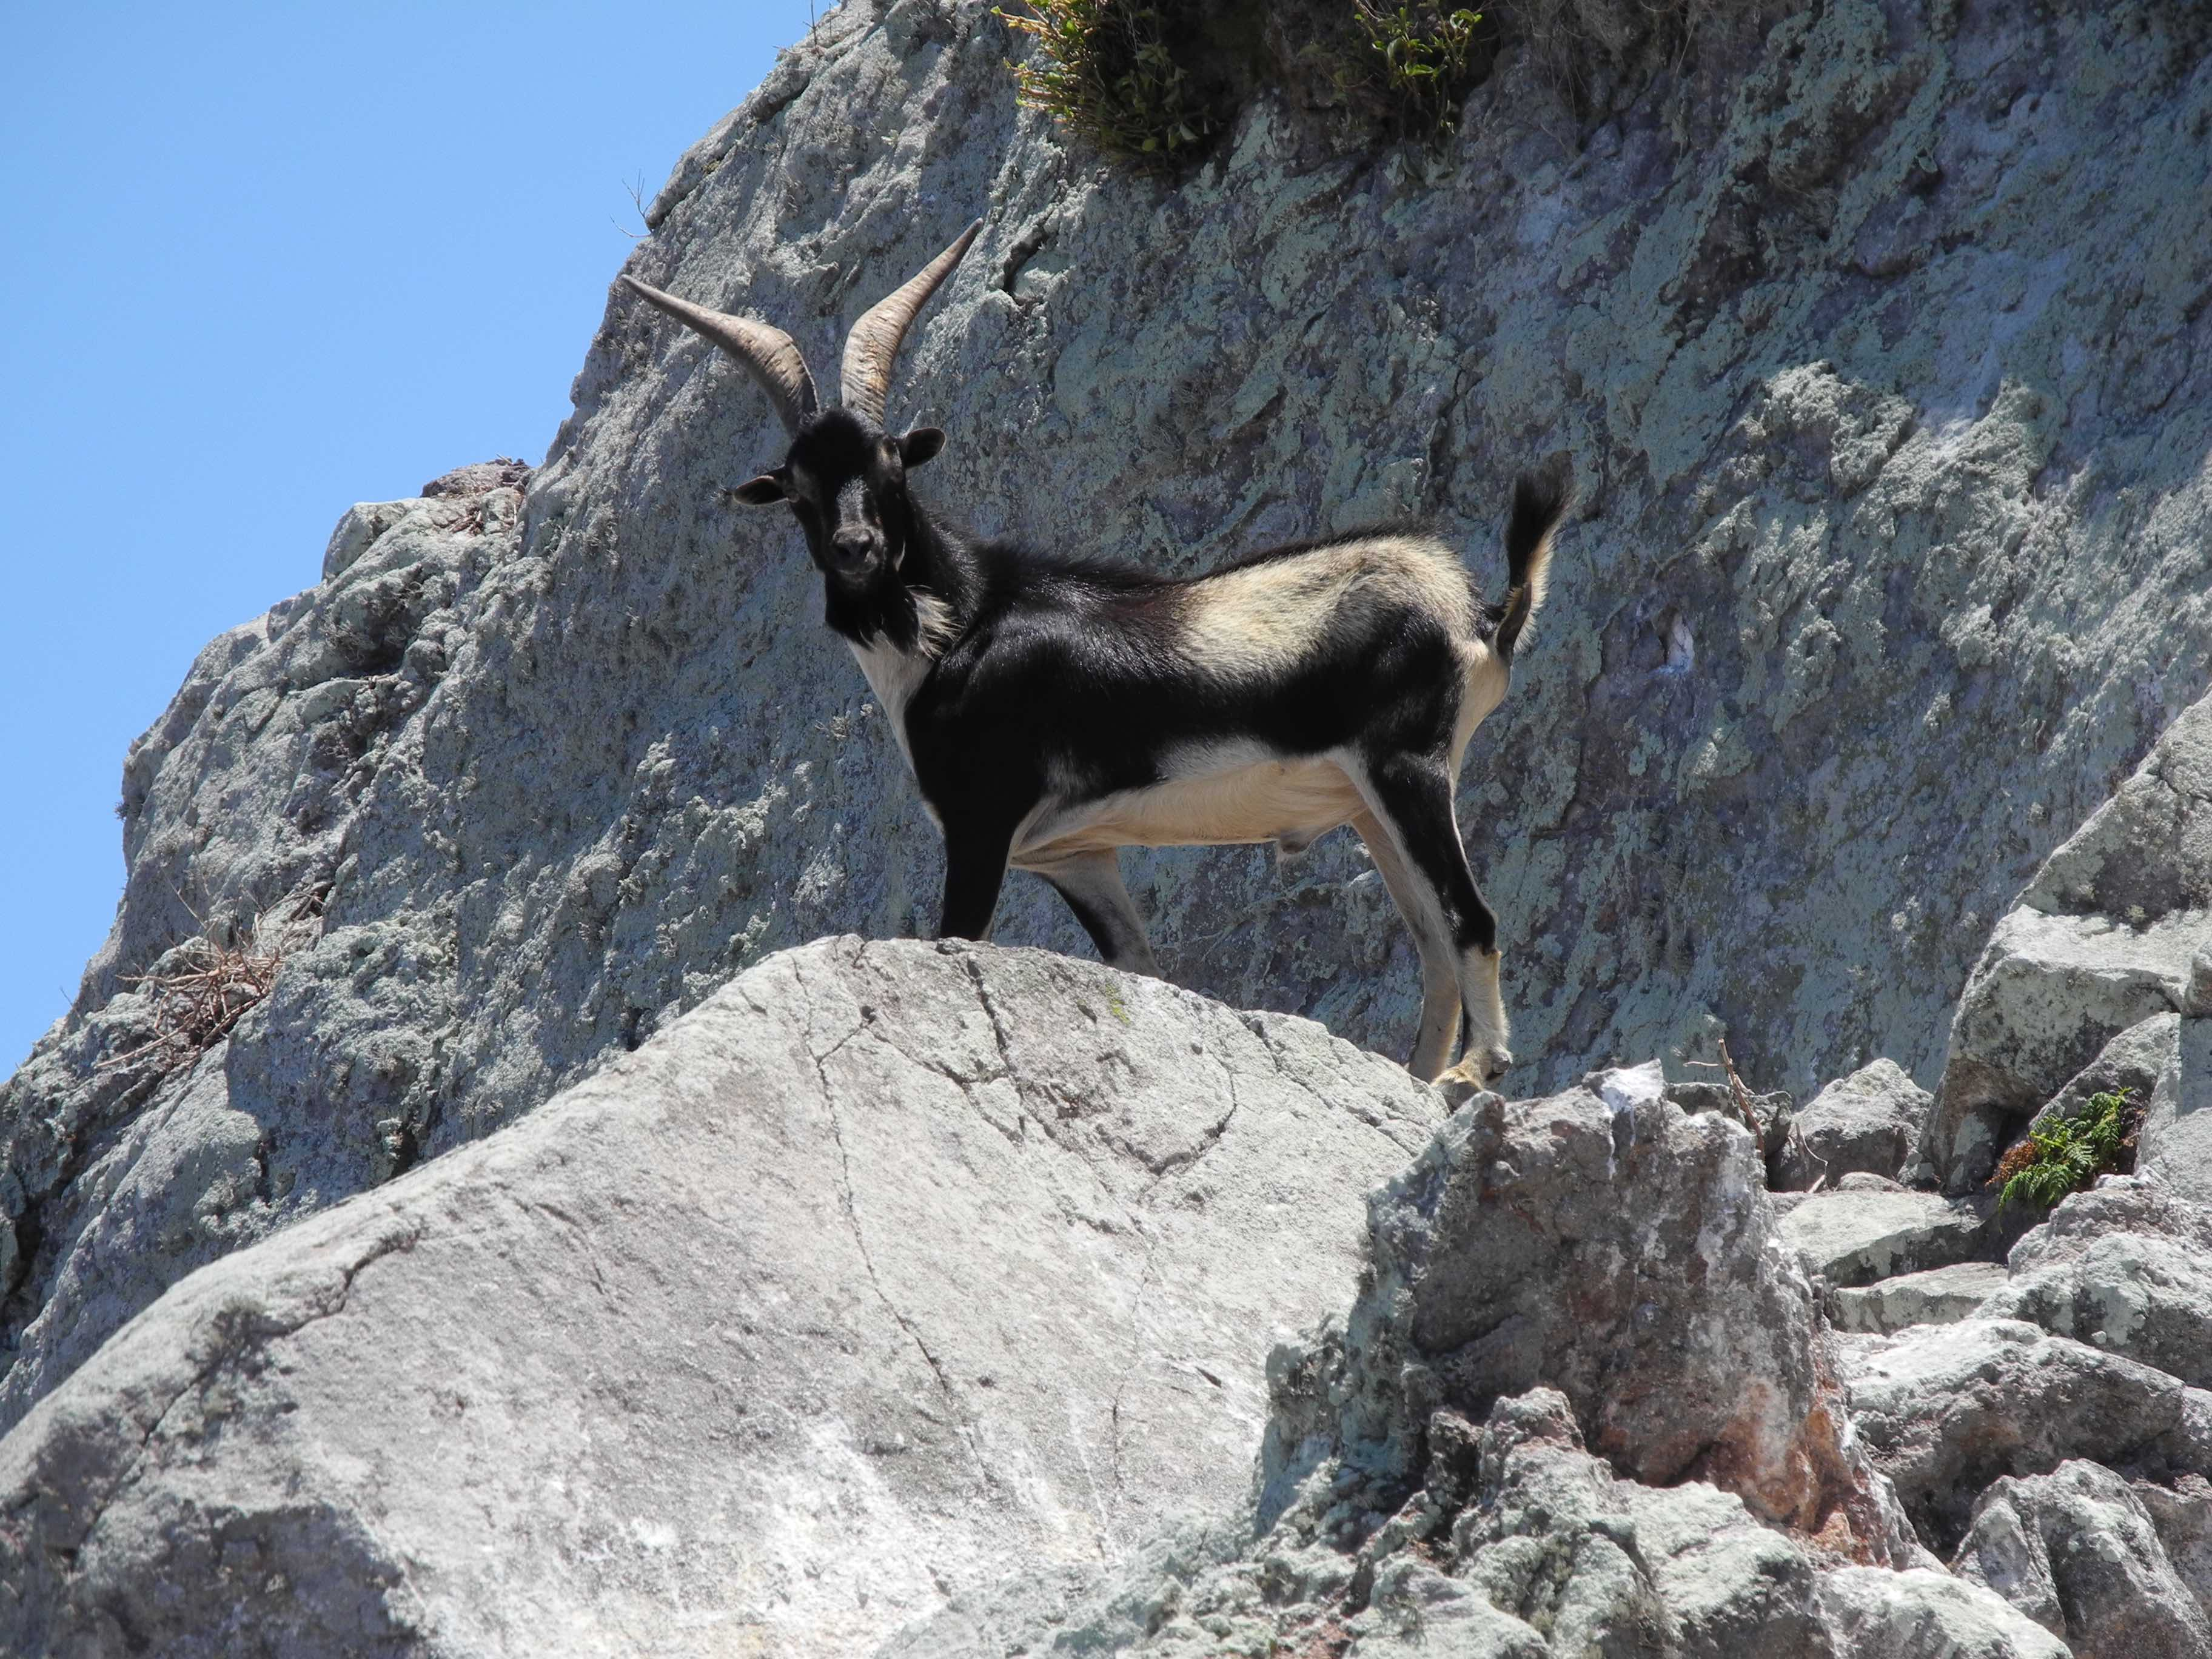 The island is also home to around 60 goats that have transformed the island's landscape together with the rats. Photo by Jenny Daltry/Fauna & Flora International.